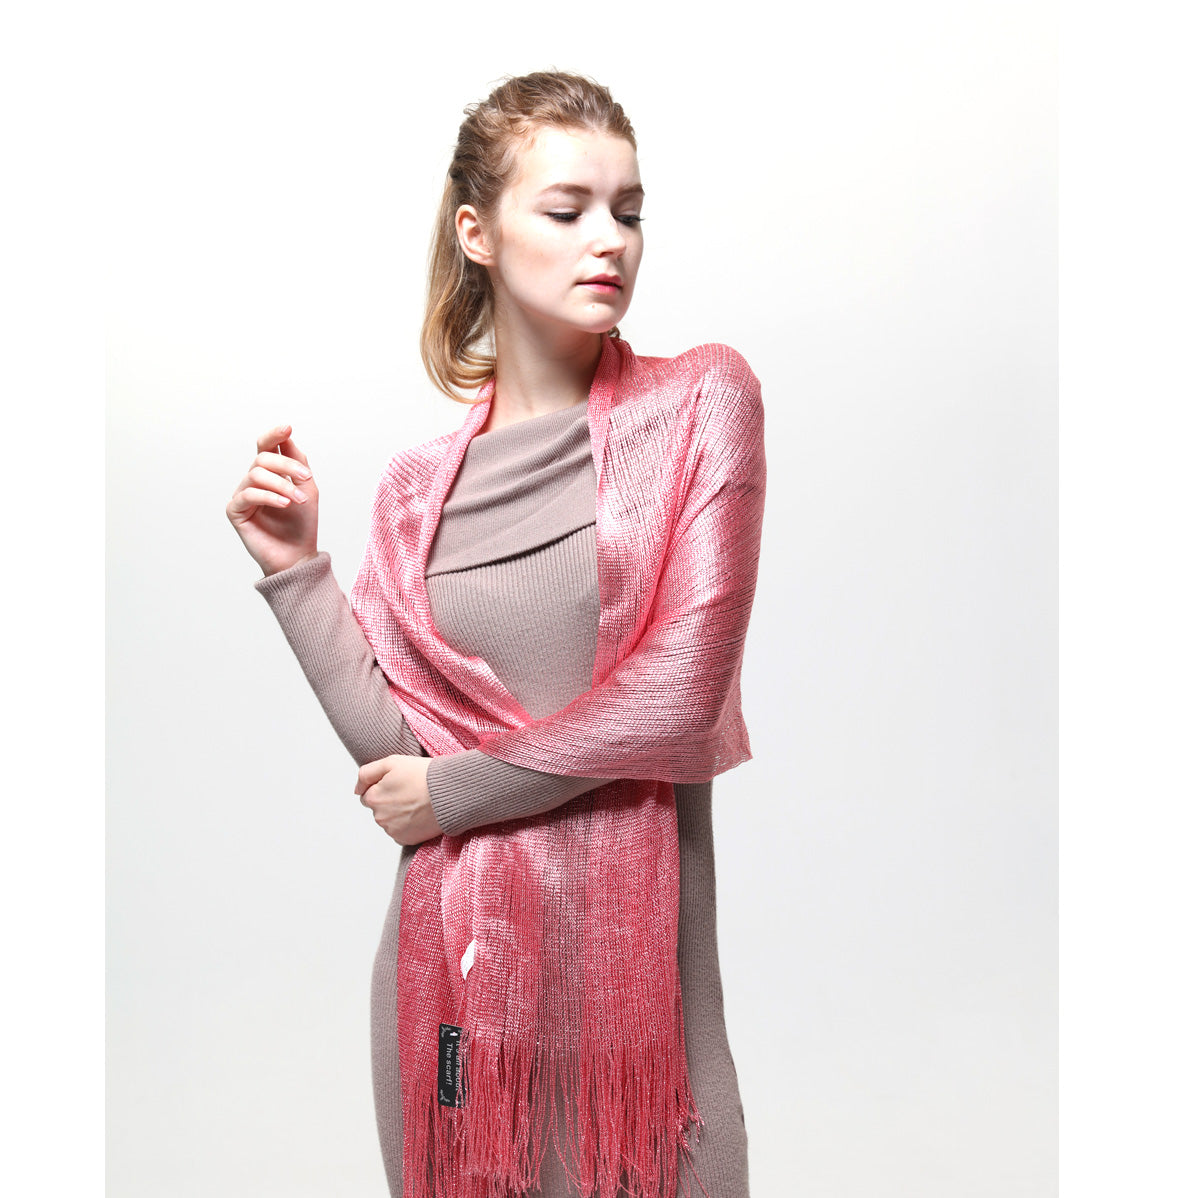 AM23118-08  Lurex Sheer Metallic Evening Scarf  Pink